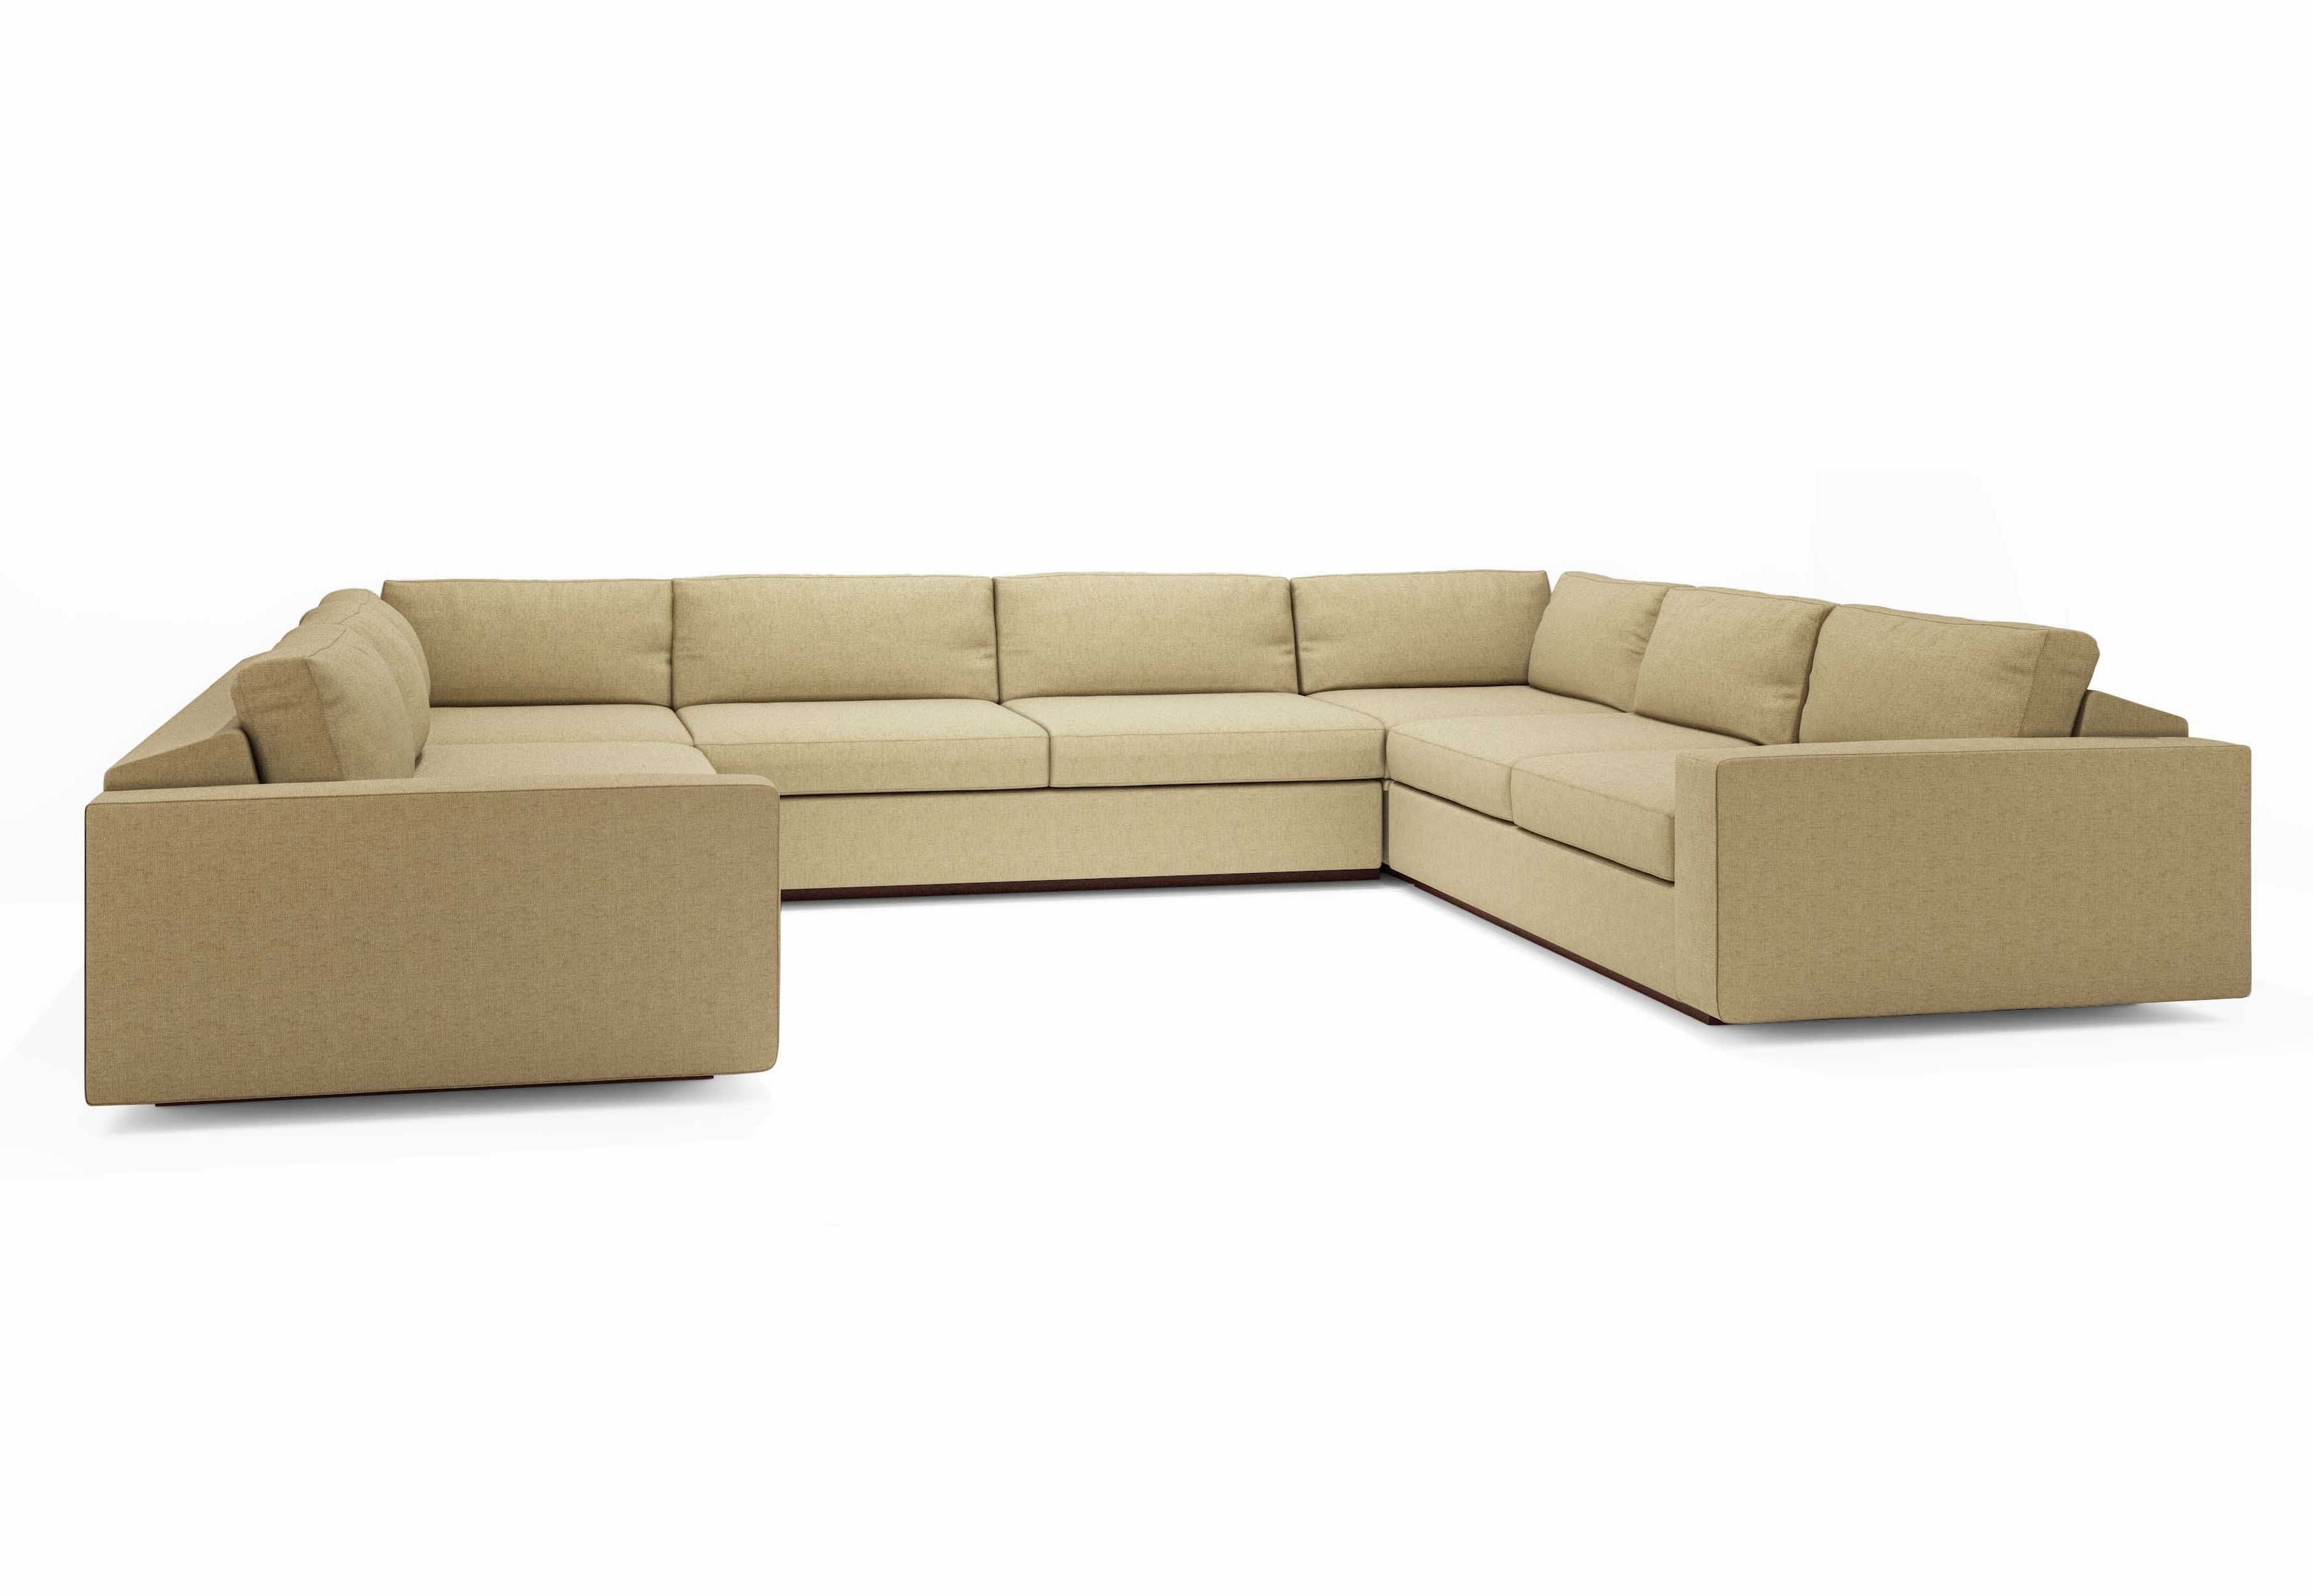 Widely Used Chaise Lounge Chairs In Canada Pertaining To Convertible Chair : Bedroom Curved Lounge Sofa Double Chaise (View 3 of 15)